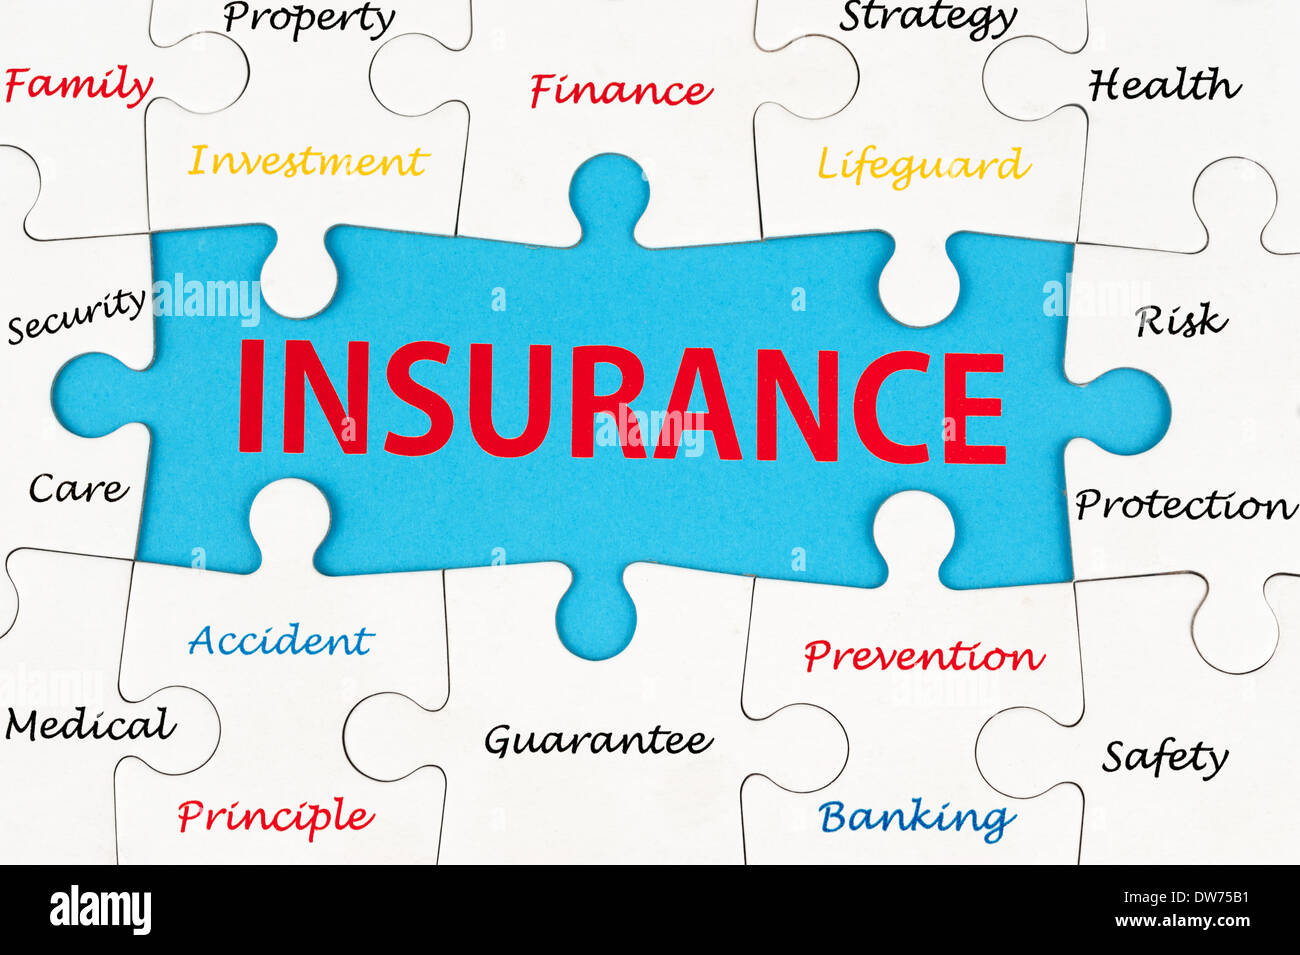 Insurance concept word cloud on group of jigsaw puzzle pieces - Stock Image